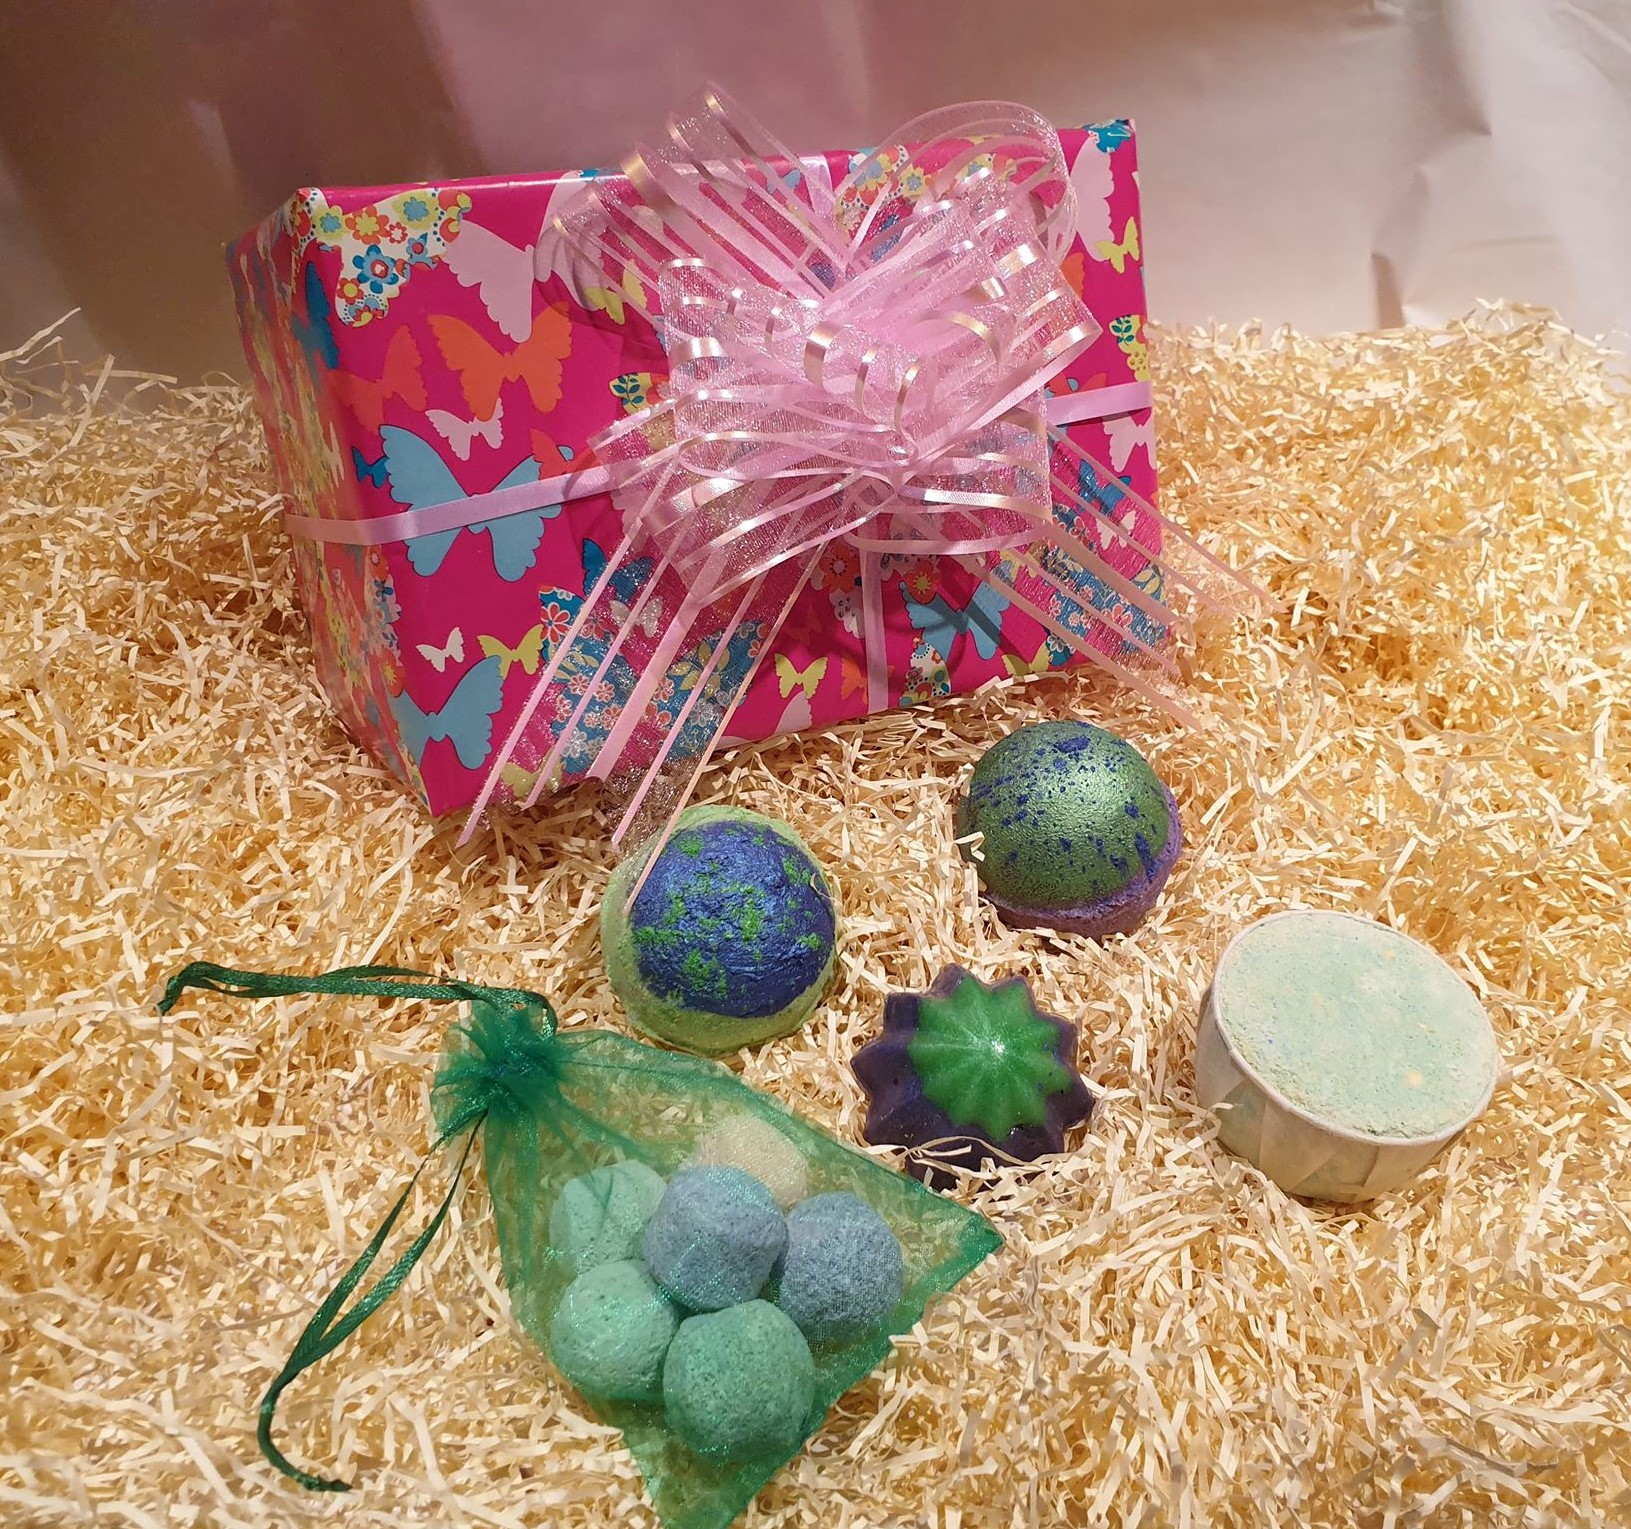 Butterfly Perfumed Inspired gift set, Handmade natural bath bombs and soaps